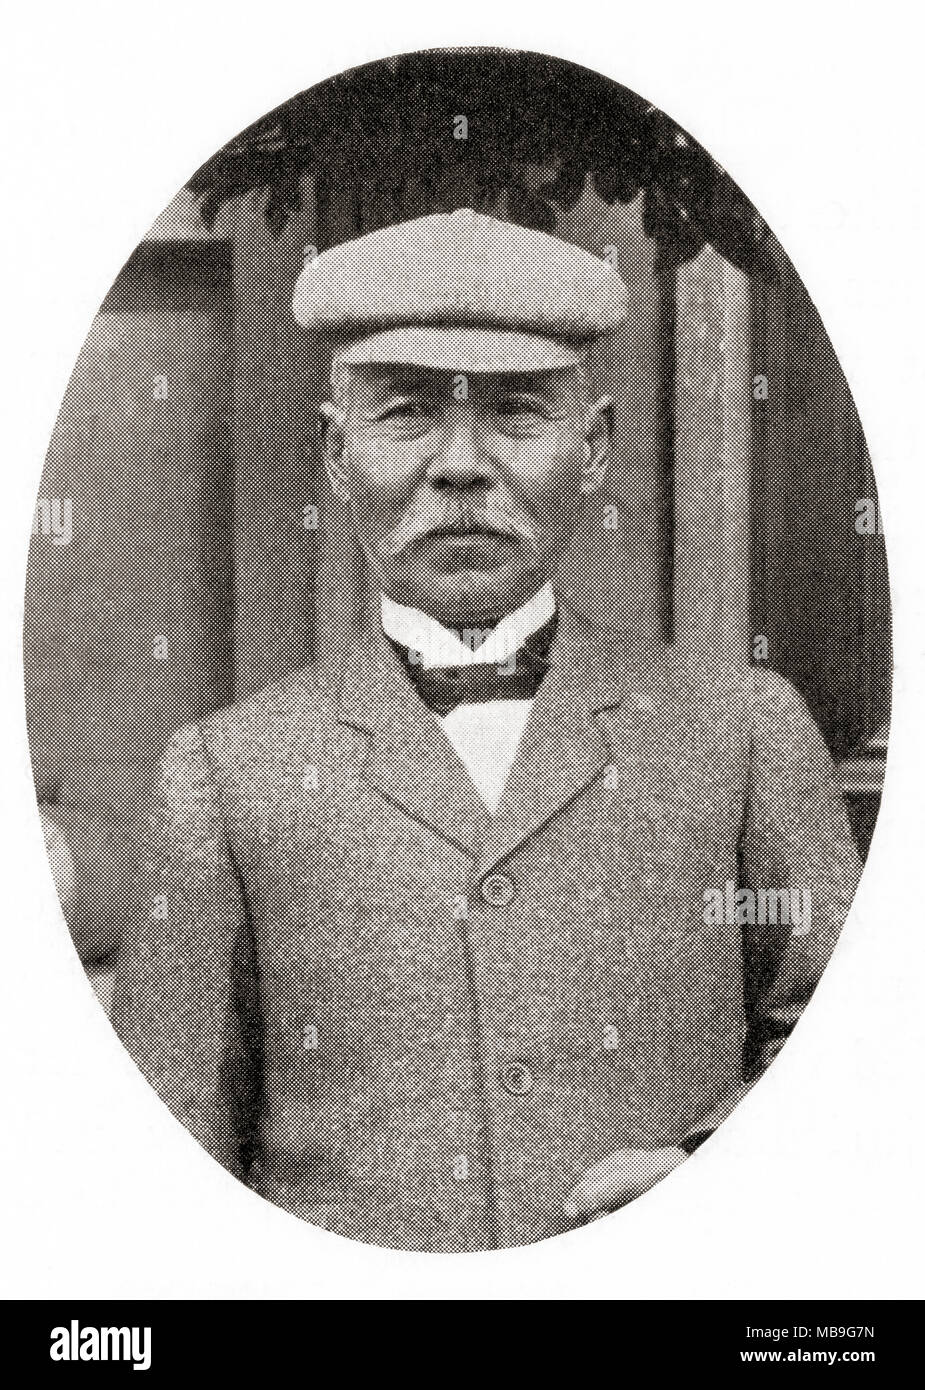 Count Tamemoto Kuroki, 1844 – 1923. Japanese general in the Imperial Japanese Army, head of the Japanese First Army during the Russo-Japanese War. From Hutchinson's History of the Nations, published 1915 - Stock Image